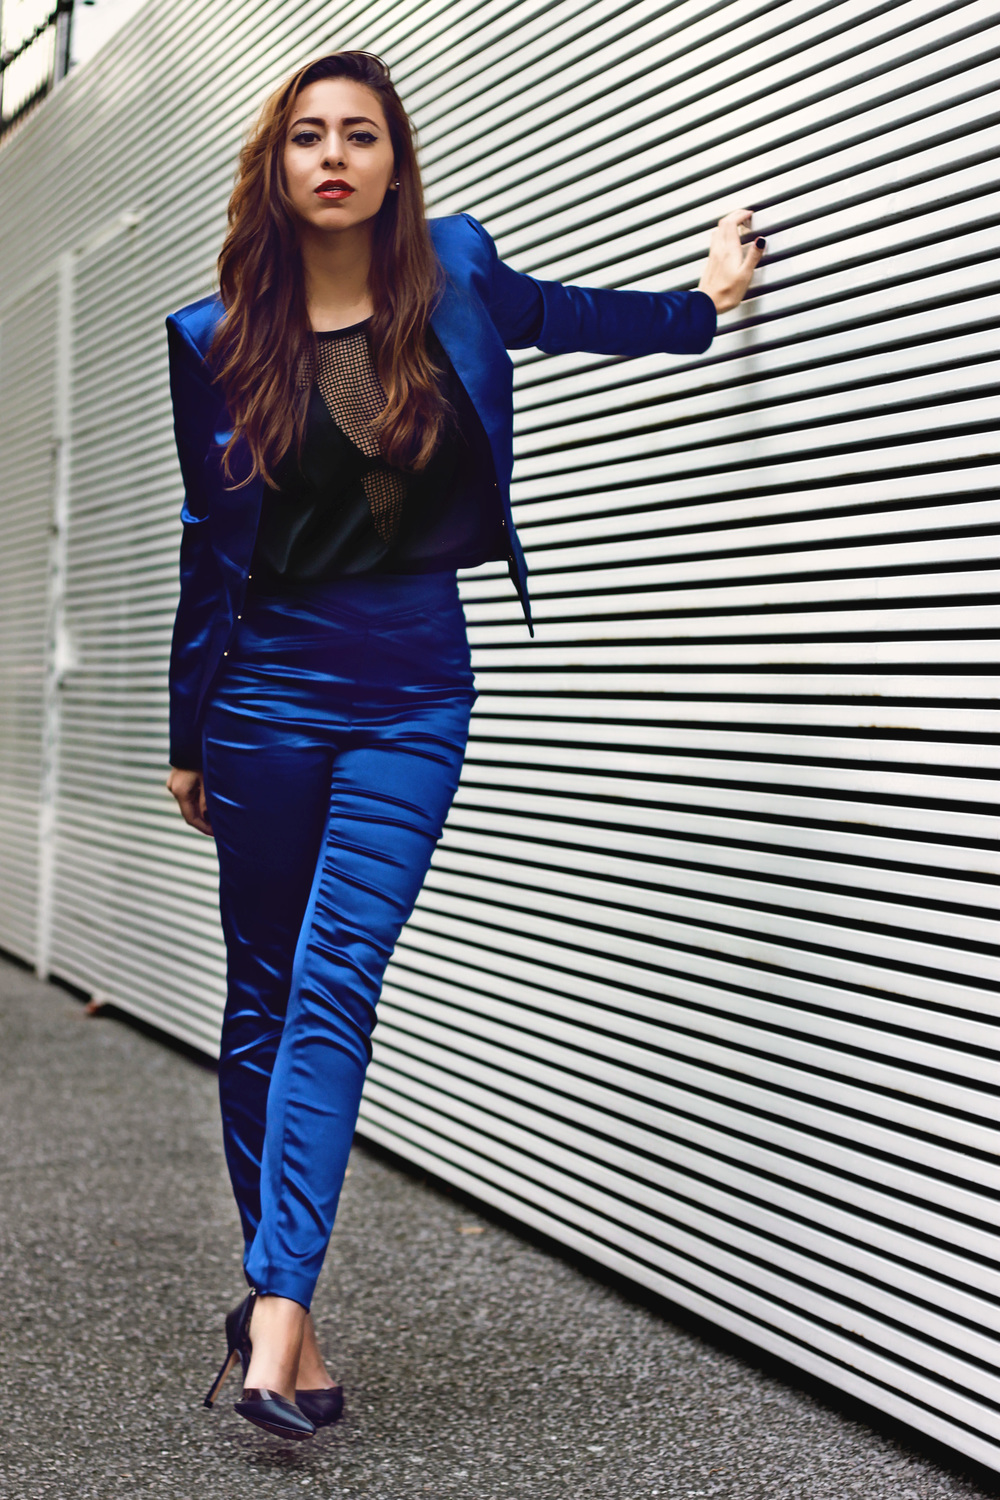 BEBE BLUE SATIN SUIT / H&M STUDIO NET BLOUSE / ZARA HEELS